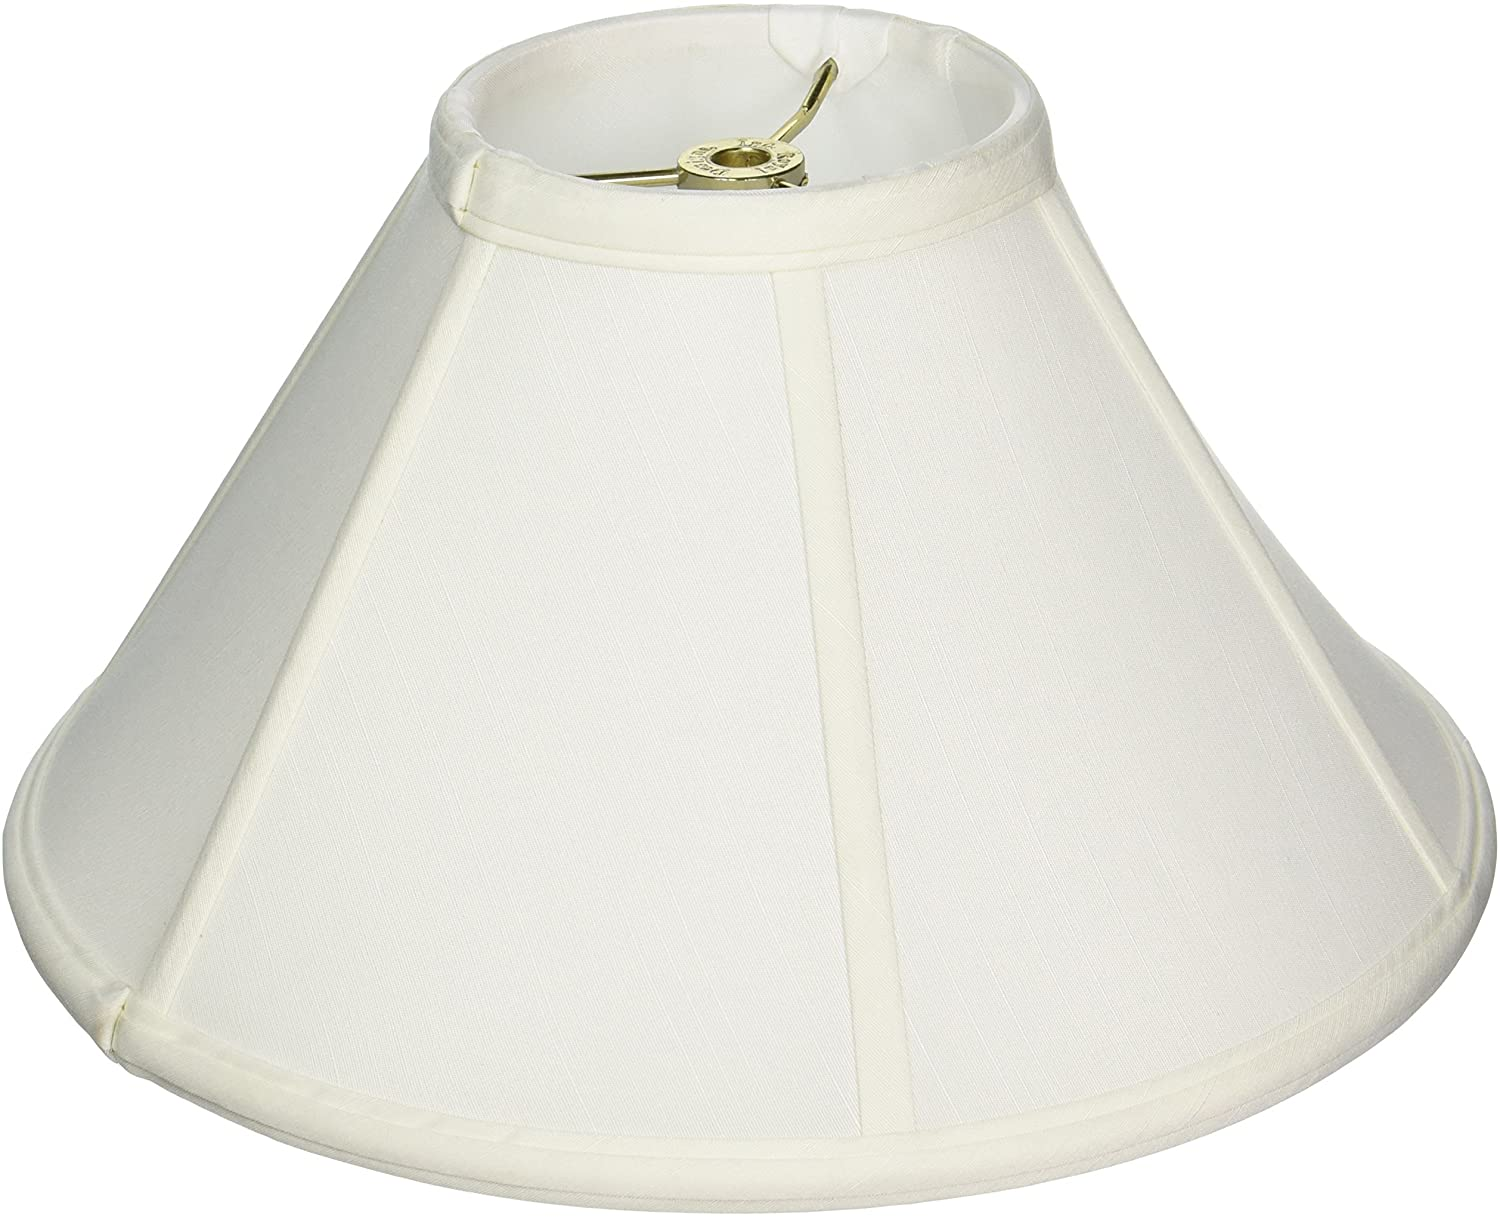 Royal Designs Empire Lamp Shade, White, 4.5 x 12 x 7.5